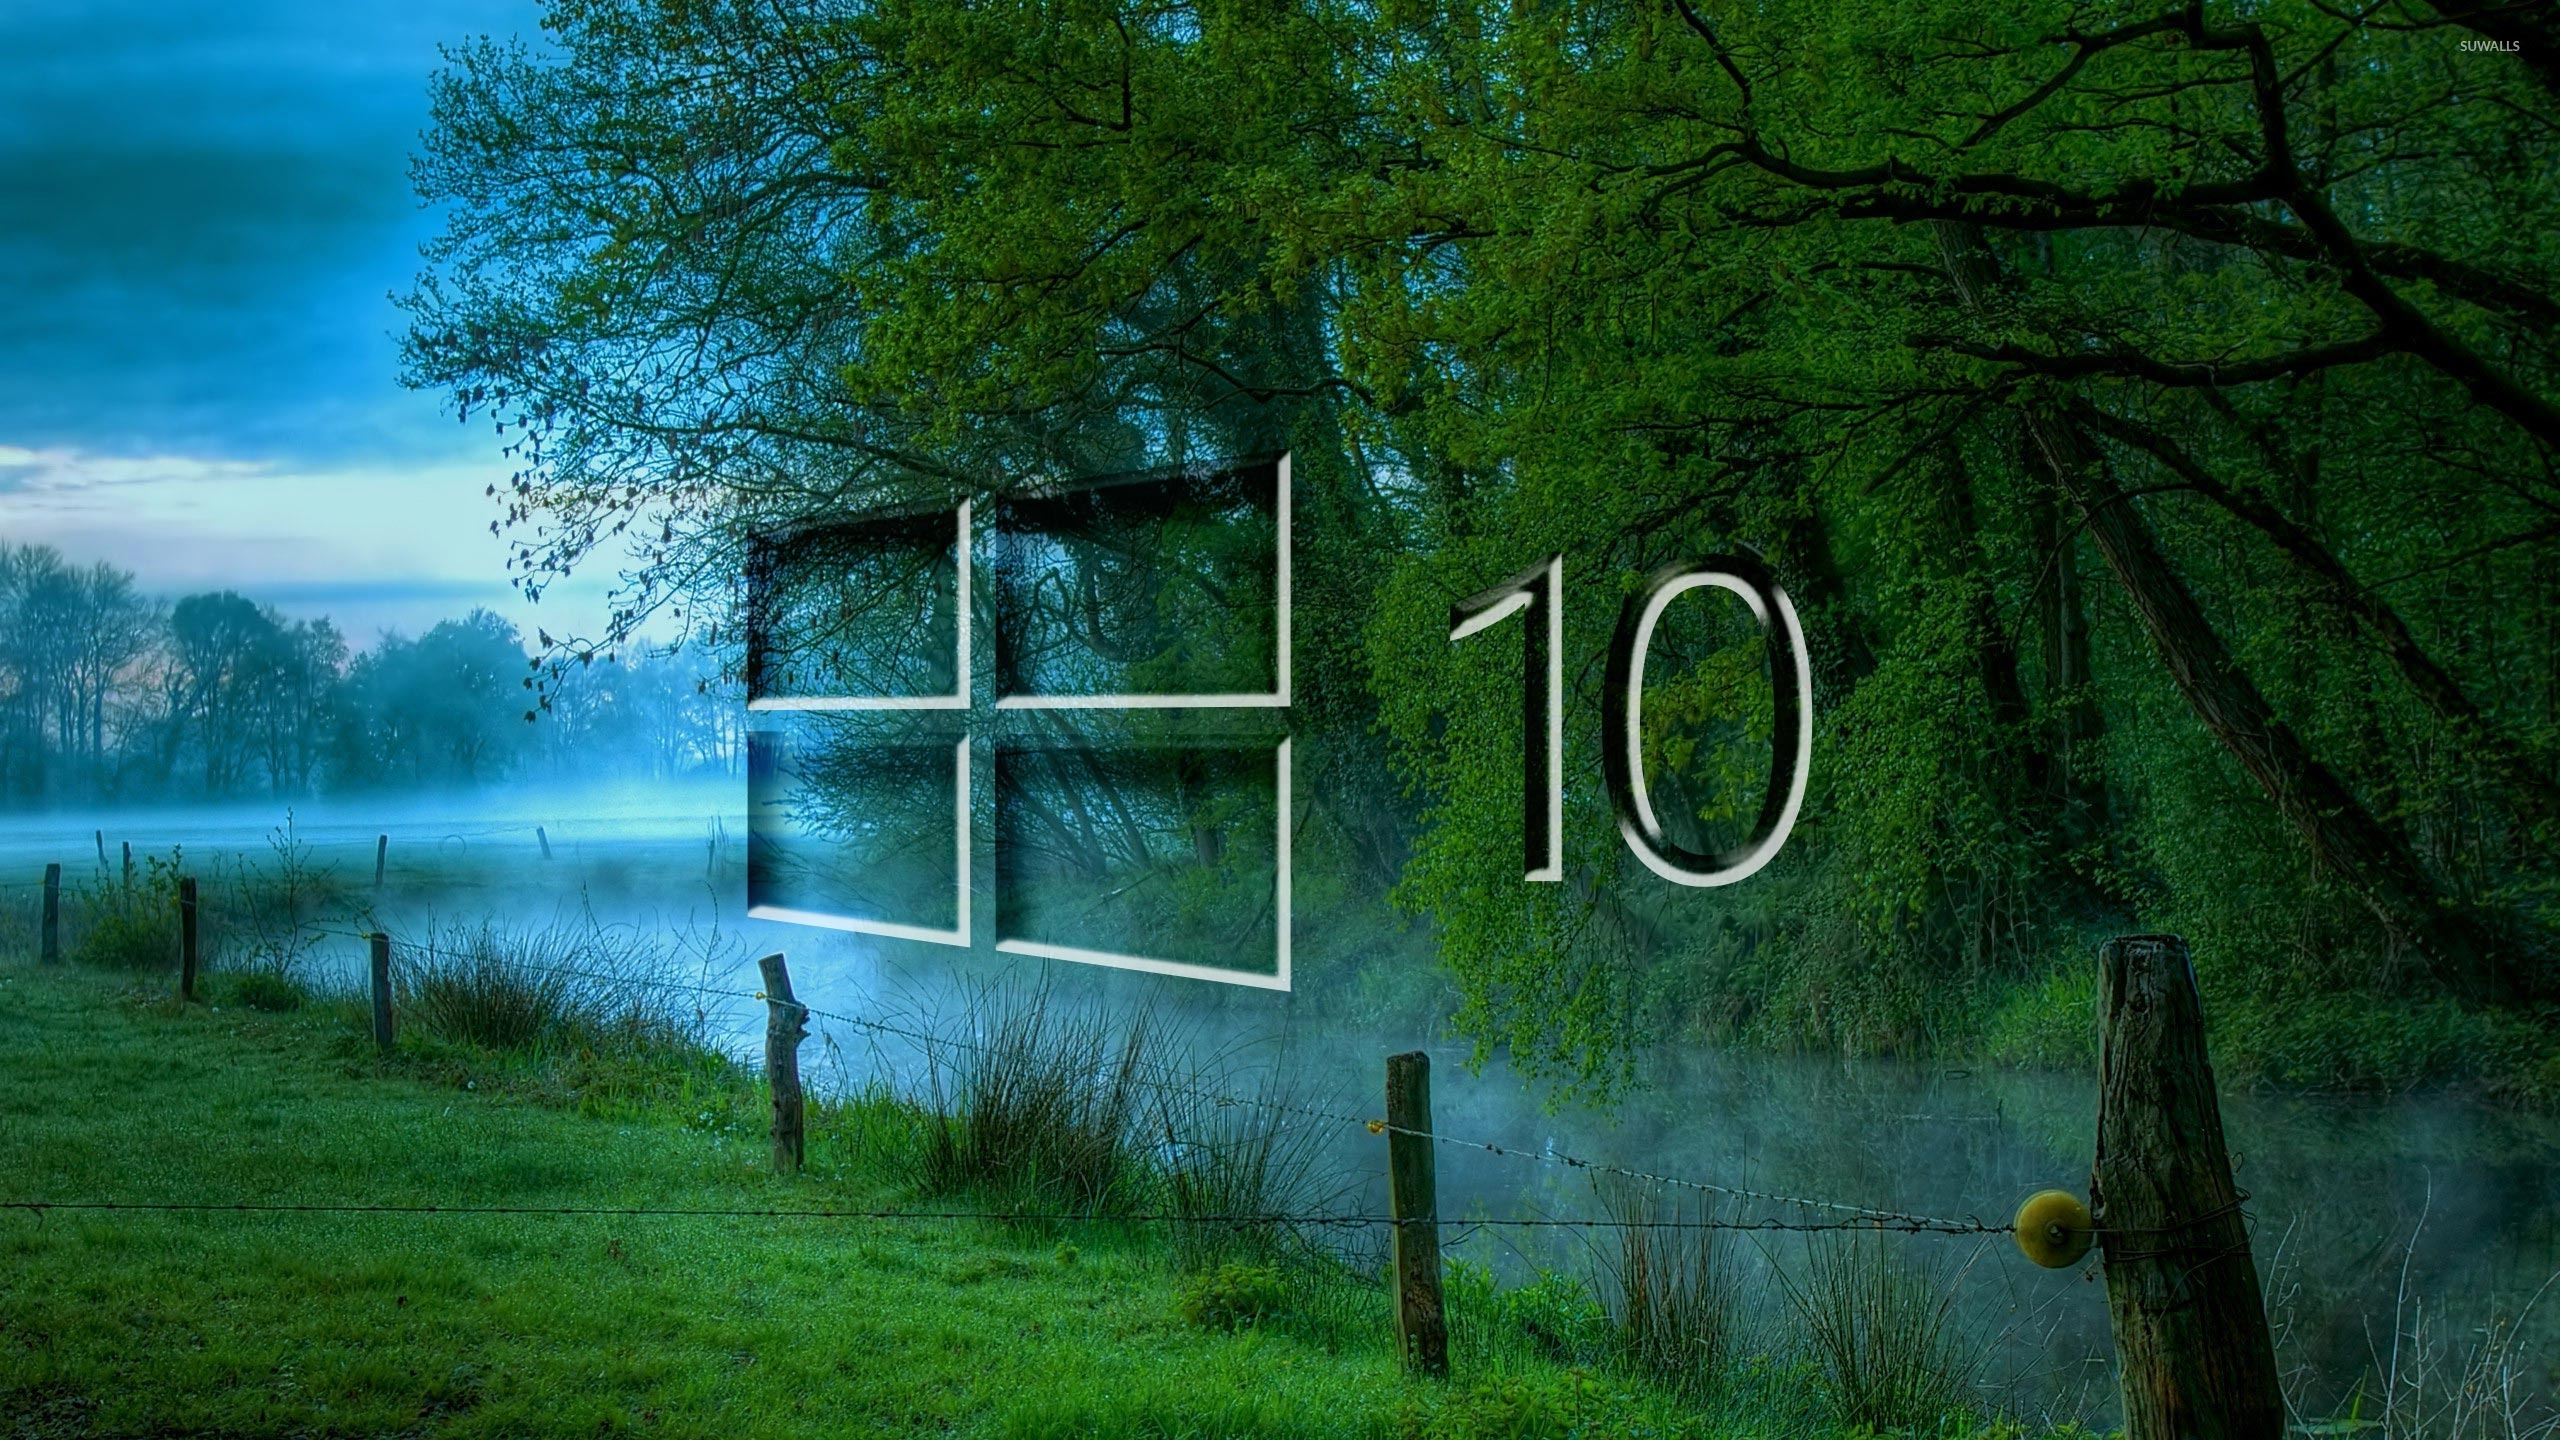 Wallpaper download for windows 10 - Windows 10 In The Misty Morning Glass Logo Wallpaper Computer